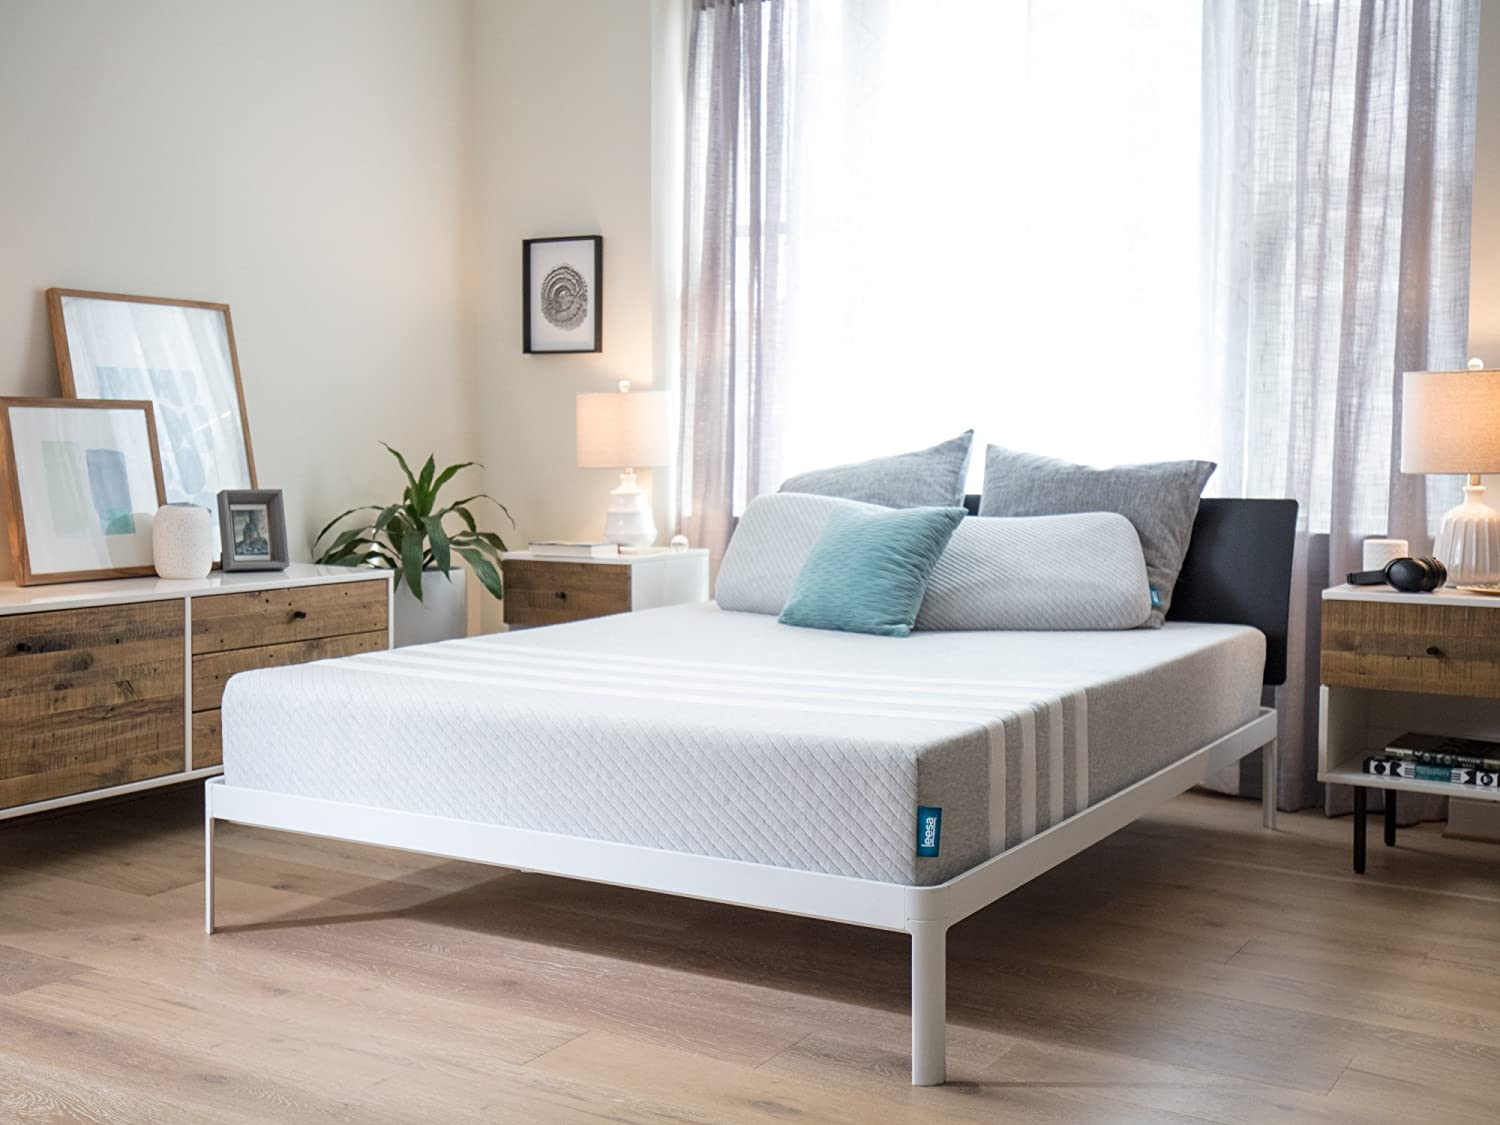 Leesa Mattress, Full, 10inch Cooling Avena and Contouring Memory Foam Mattress